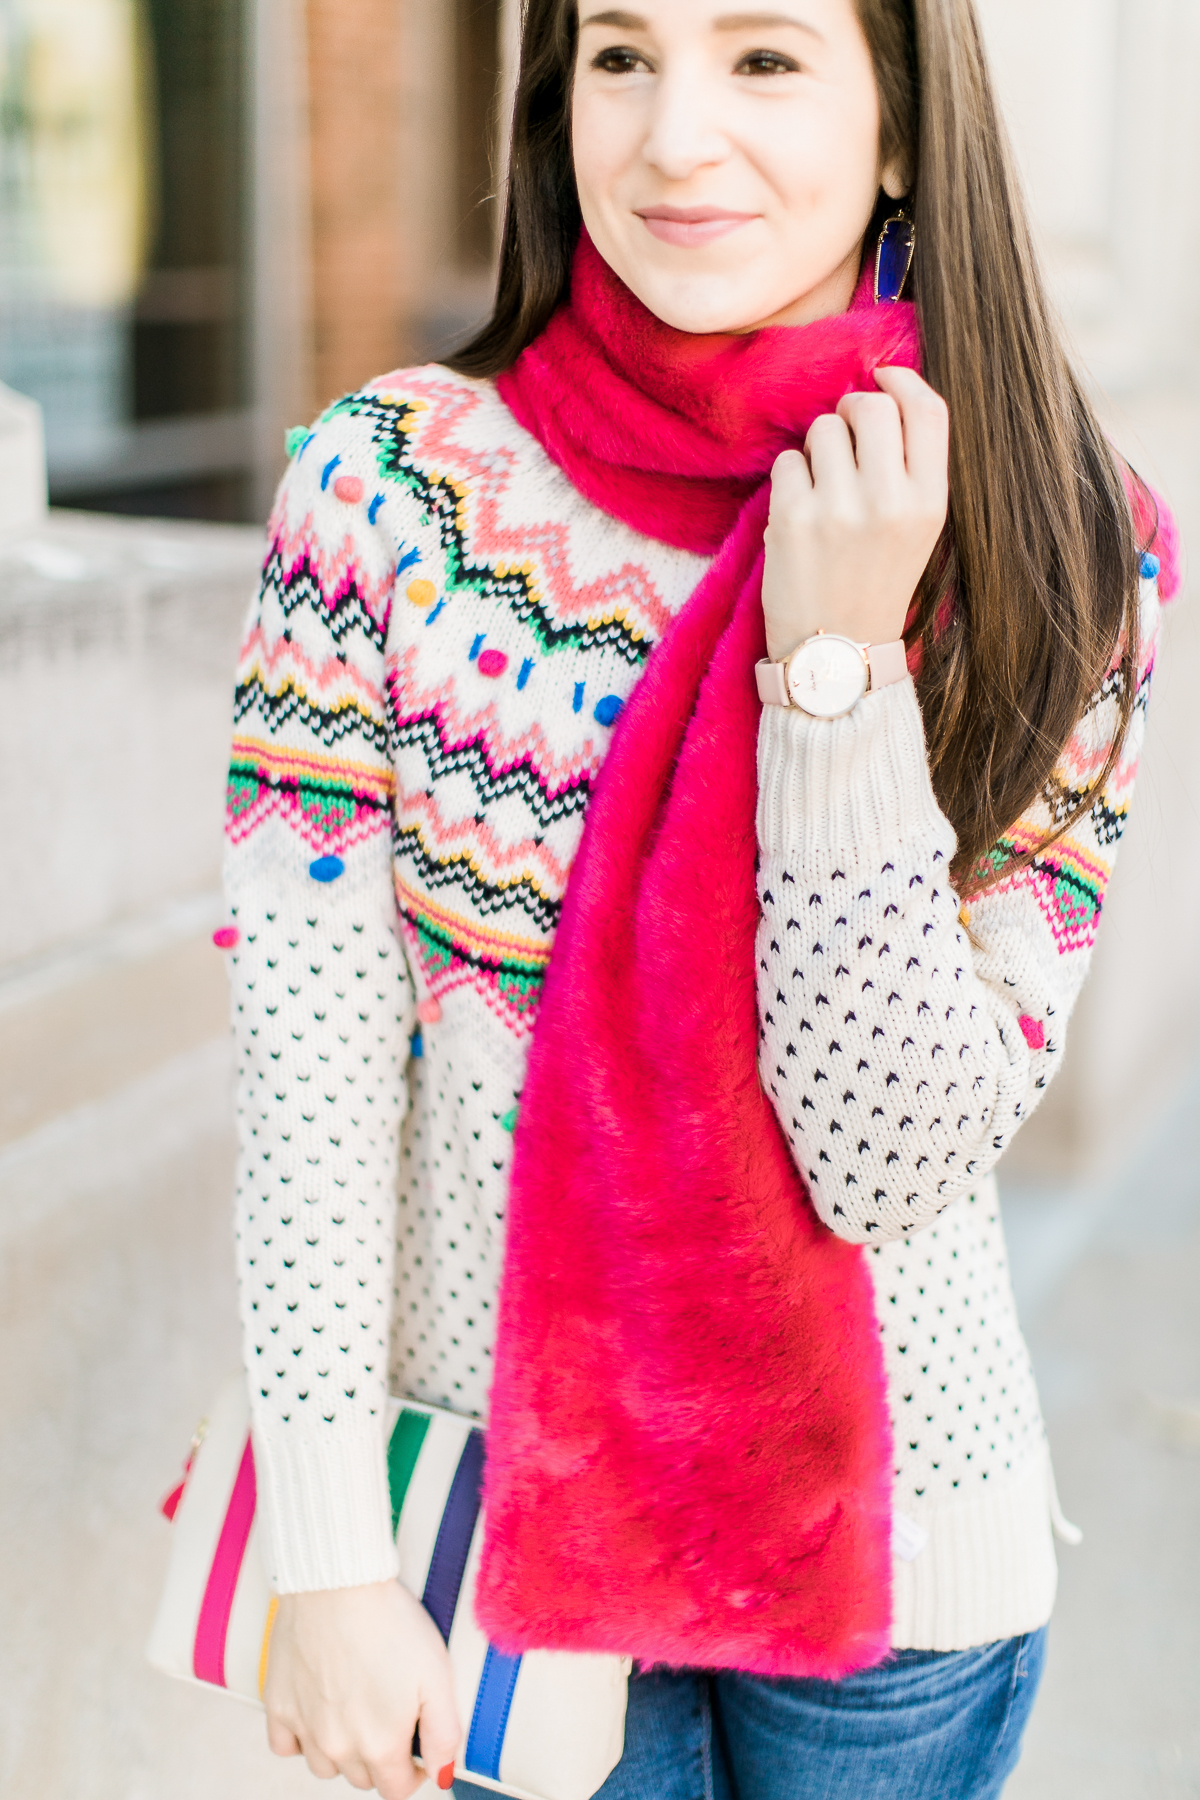 Colorful Christmas sweater ideas from Talbots, featuring their Carnival Fair Isle Sweater, Pink Faux Fur Pull Through Scarf, and Canvas Stripe Makeup Pouch styled with AG the Legging ankle jeans, taupe Free People Liberty boots, and cognac Kendra Scott Skylar earrings by southern fashion blogger Stephanie Ziajka from Diary of a Debutante